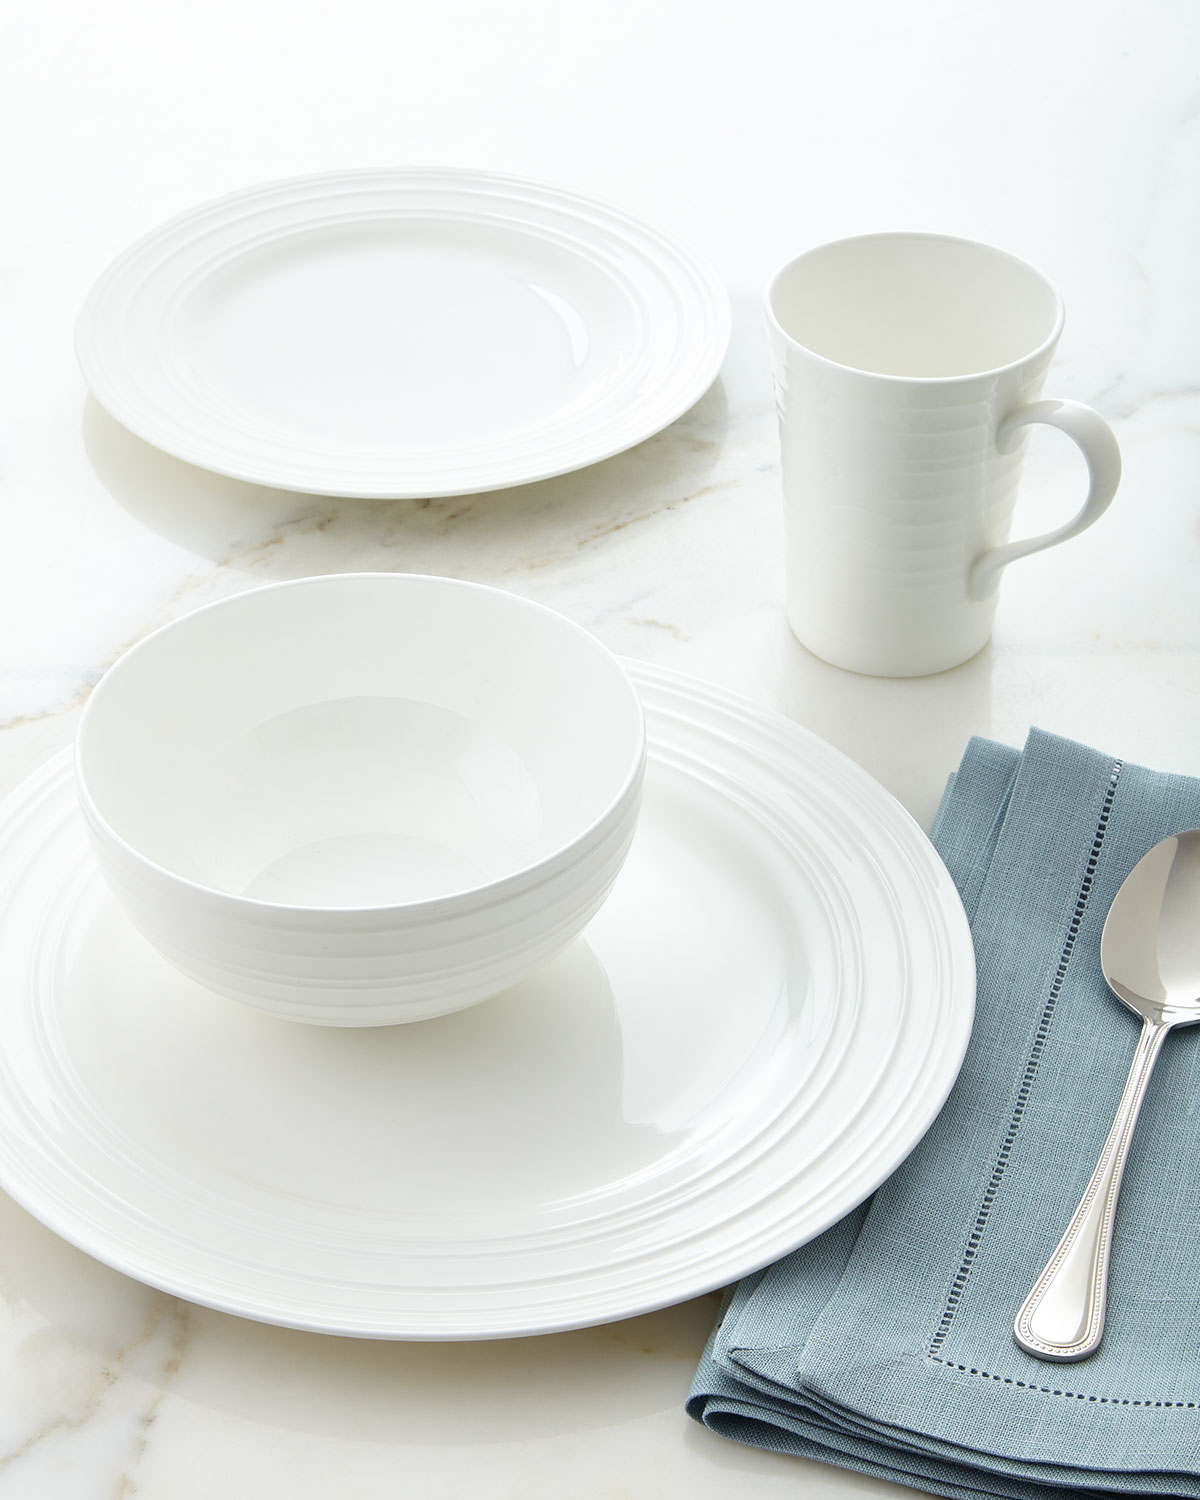 Quick Look & Bone China Dinnerware | Neiman Marcus